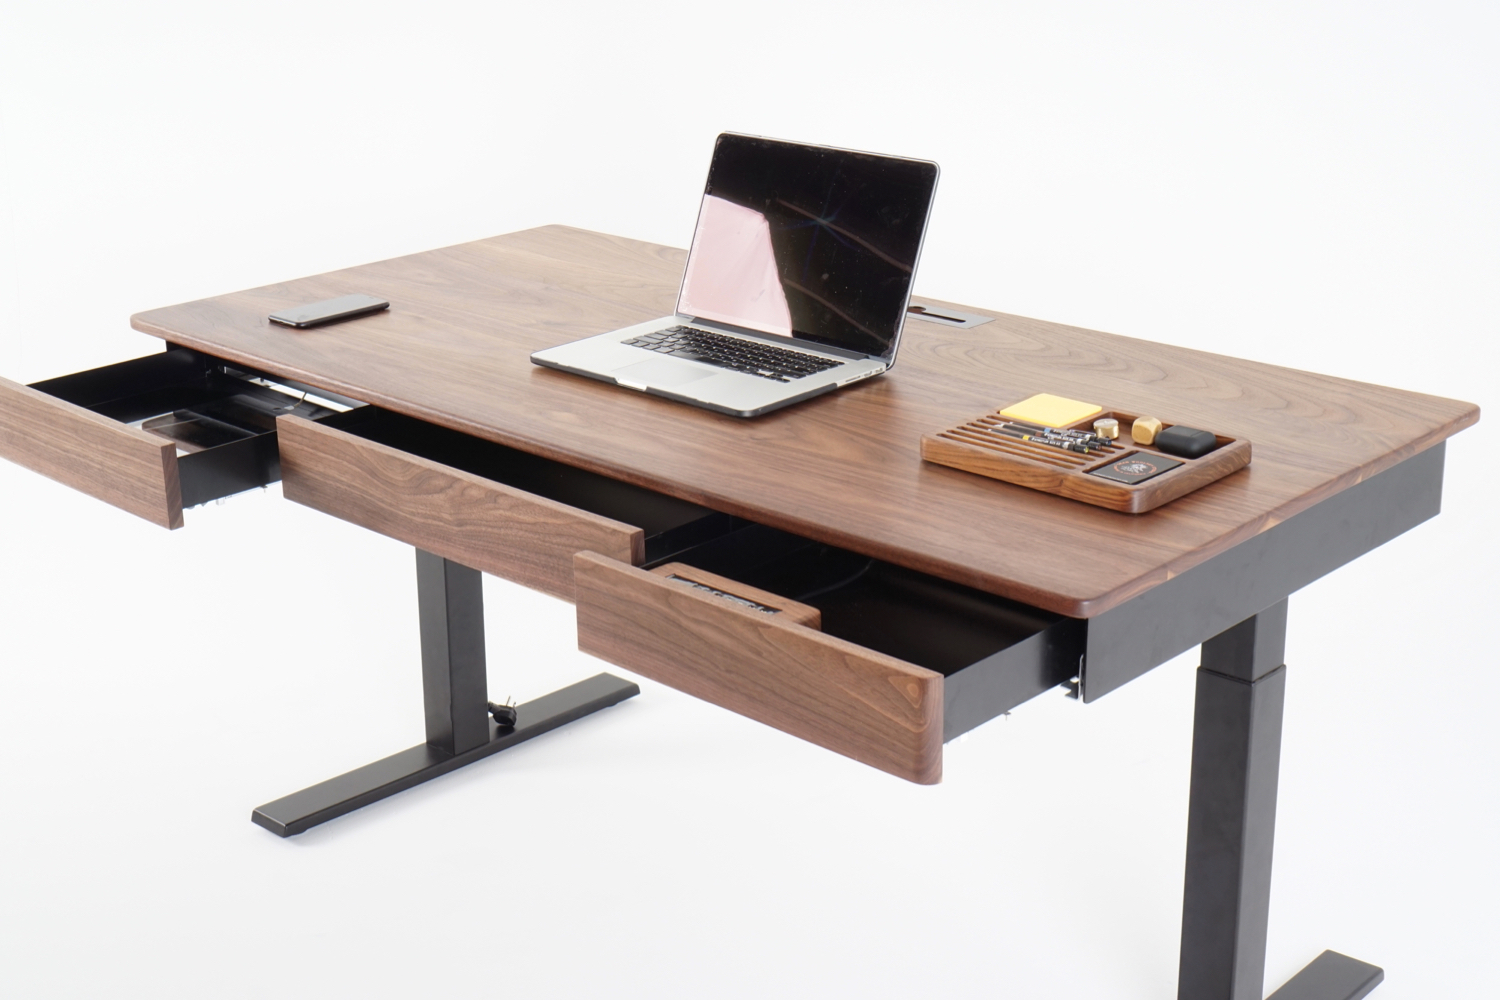 Image result for Sean Woolsey Efficiently Designed Smart Desk